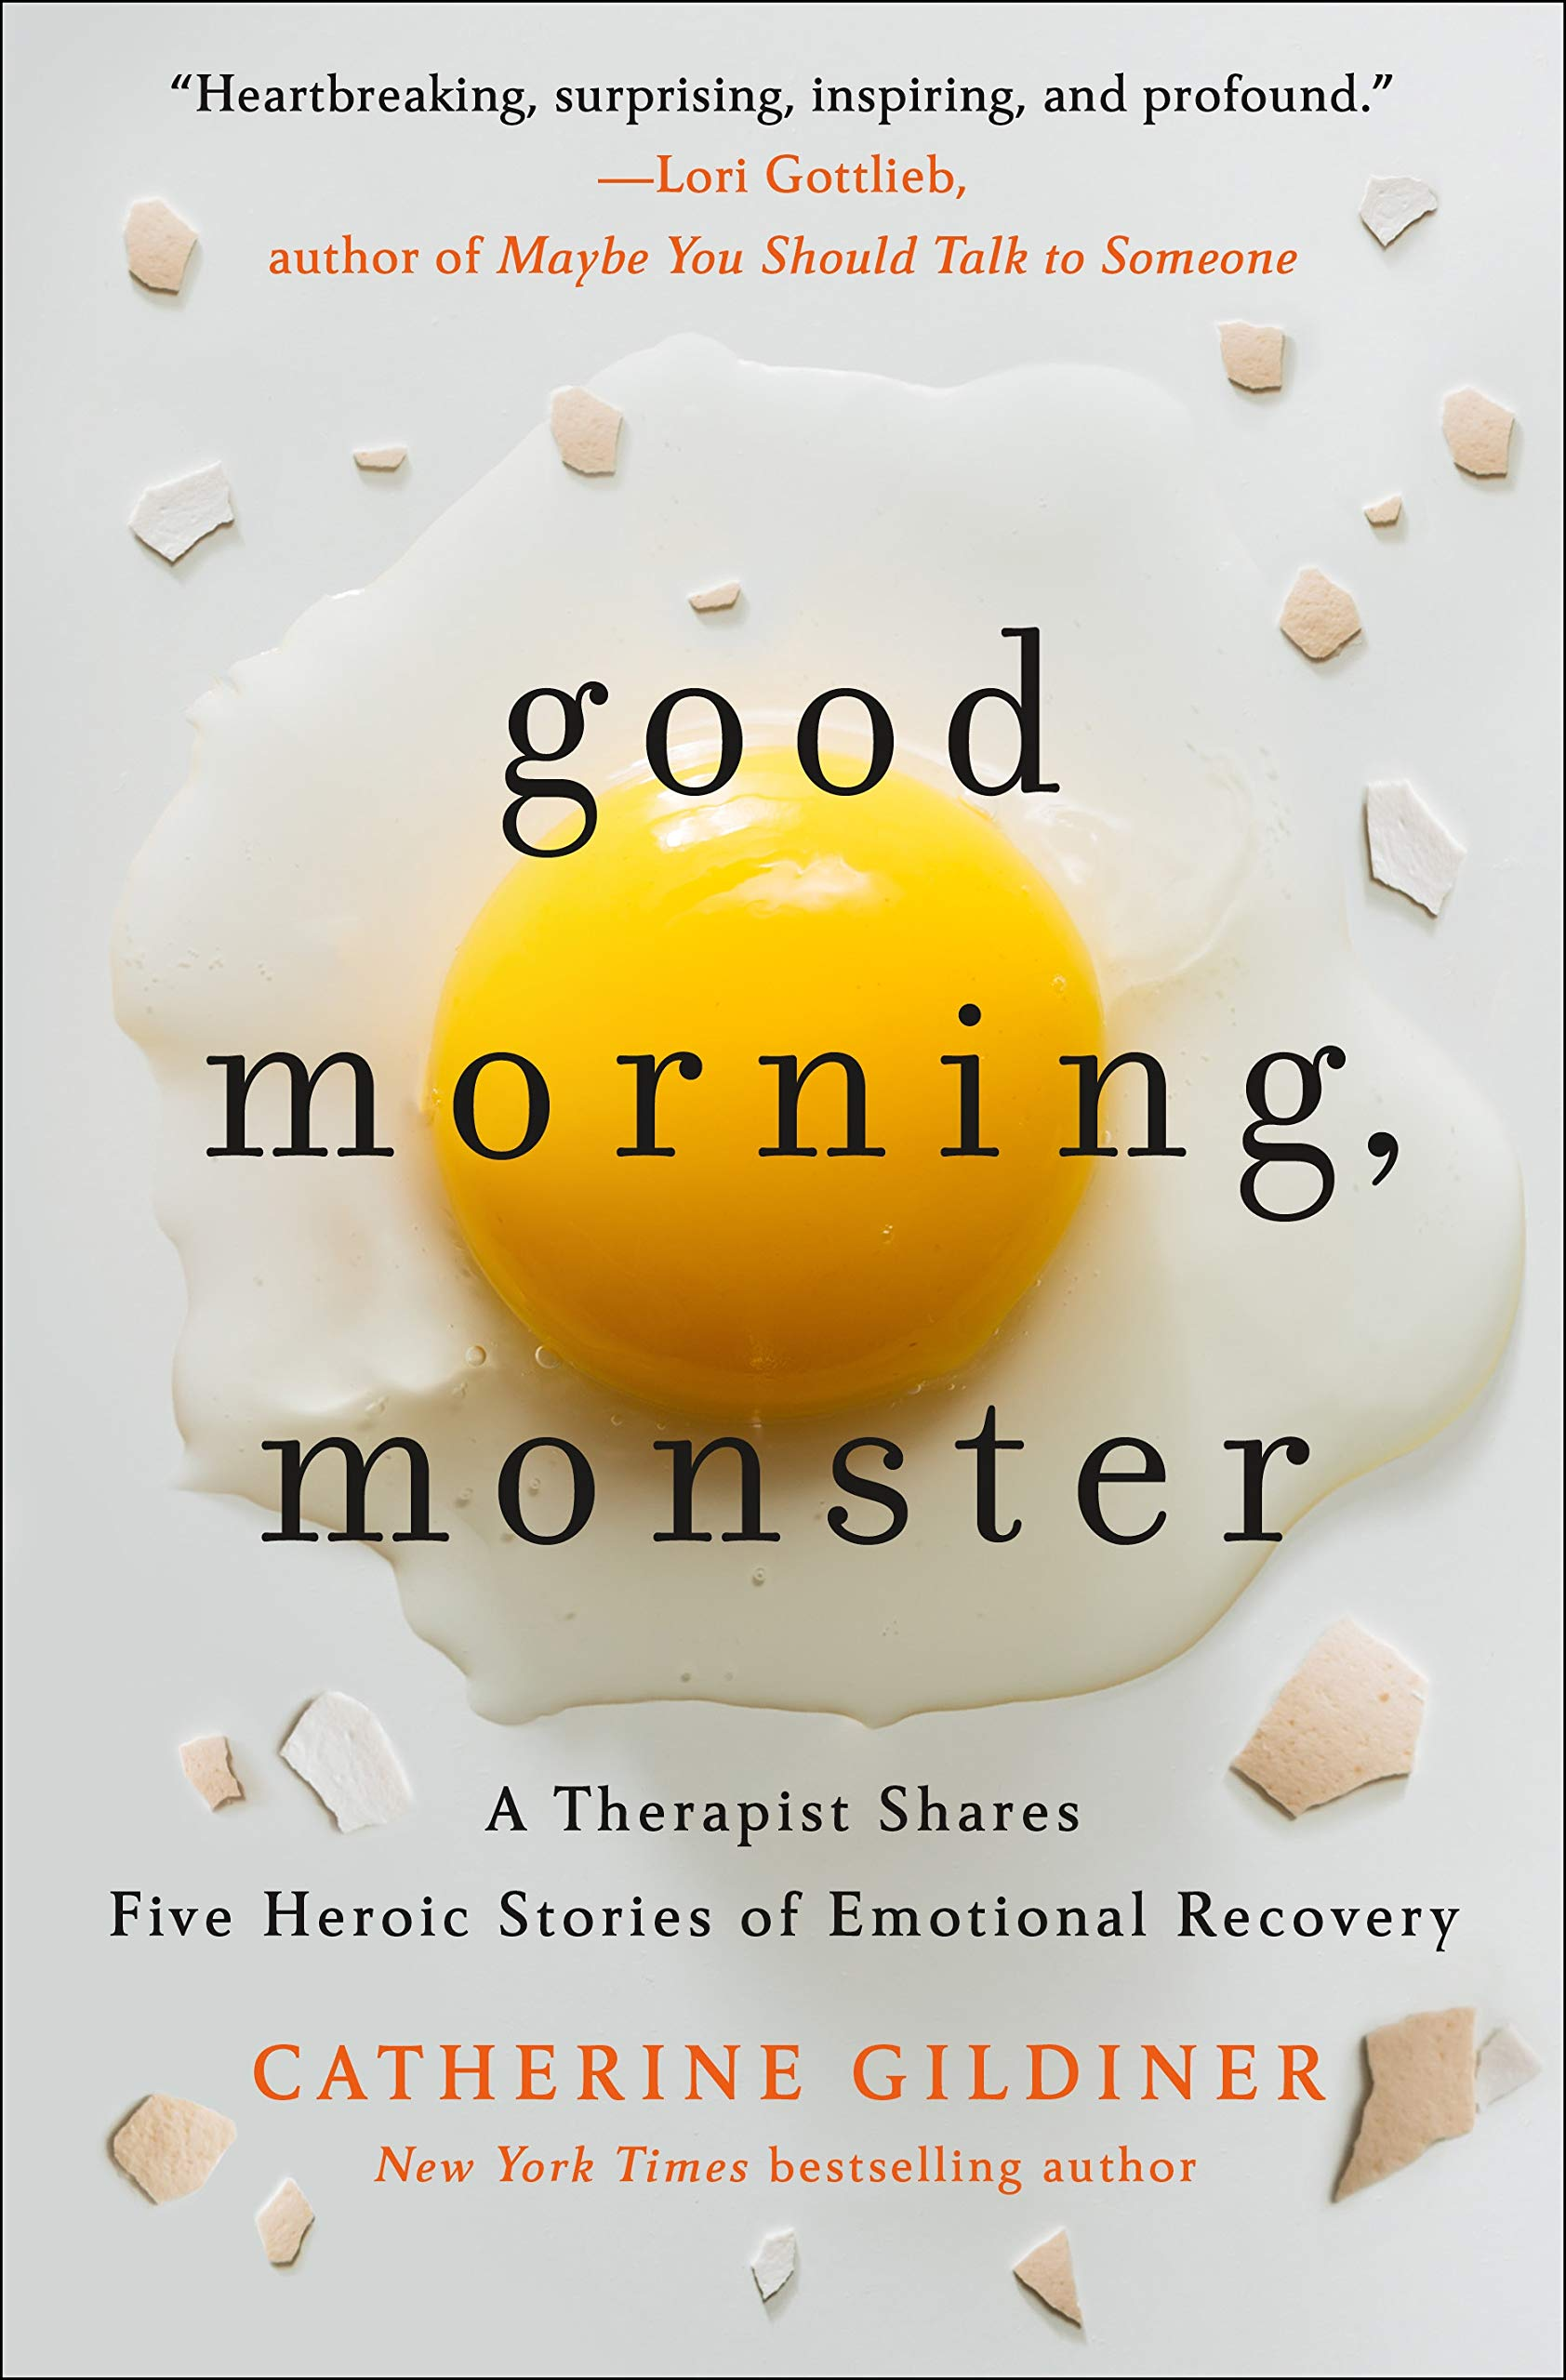 Amazon.com: Good Morning, Monster: A Therapist Shares Five Heroic Stories  of Emotional Recovery (9781250271488): Gildiner, Catherine: Books